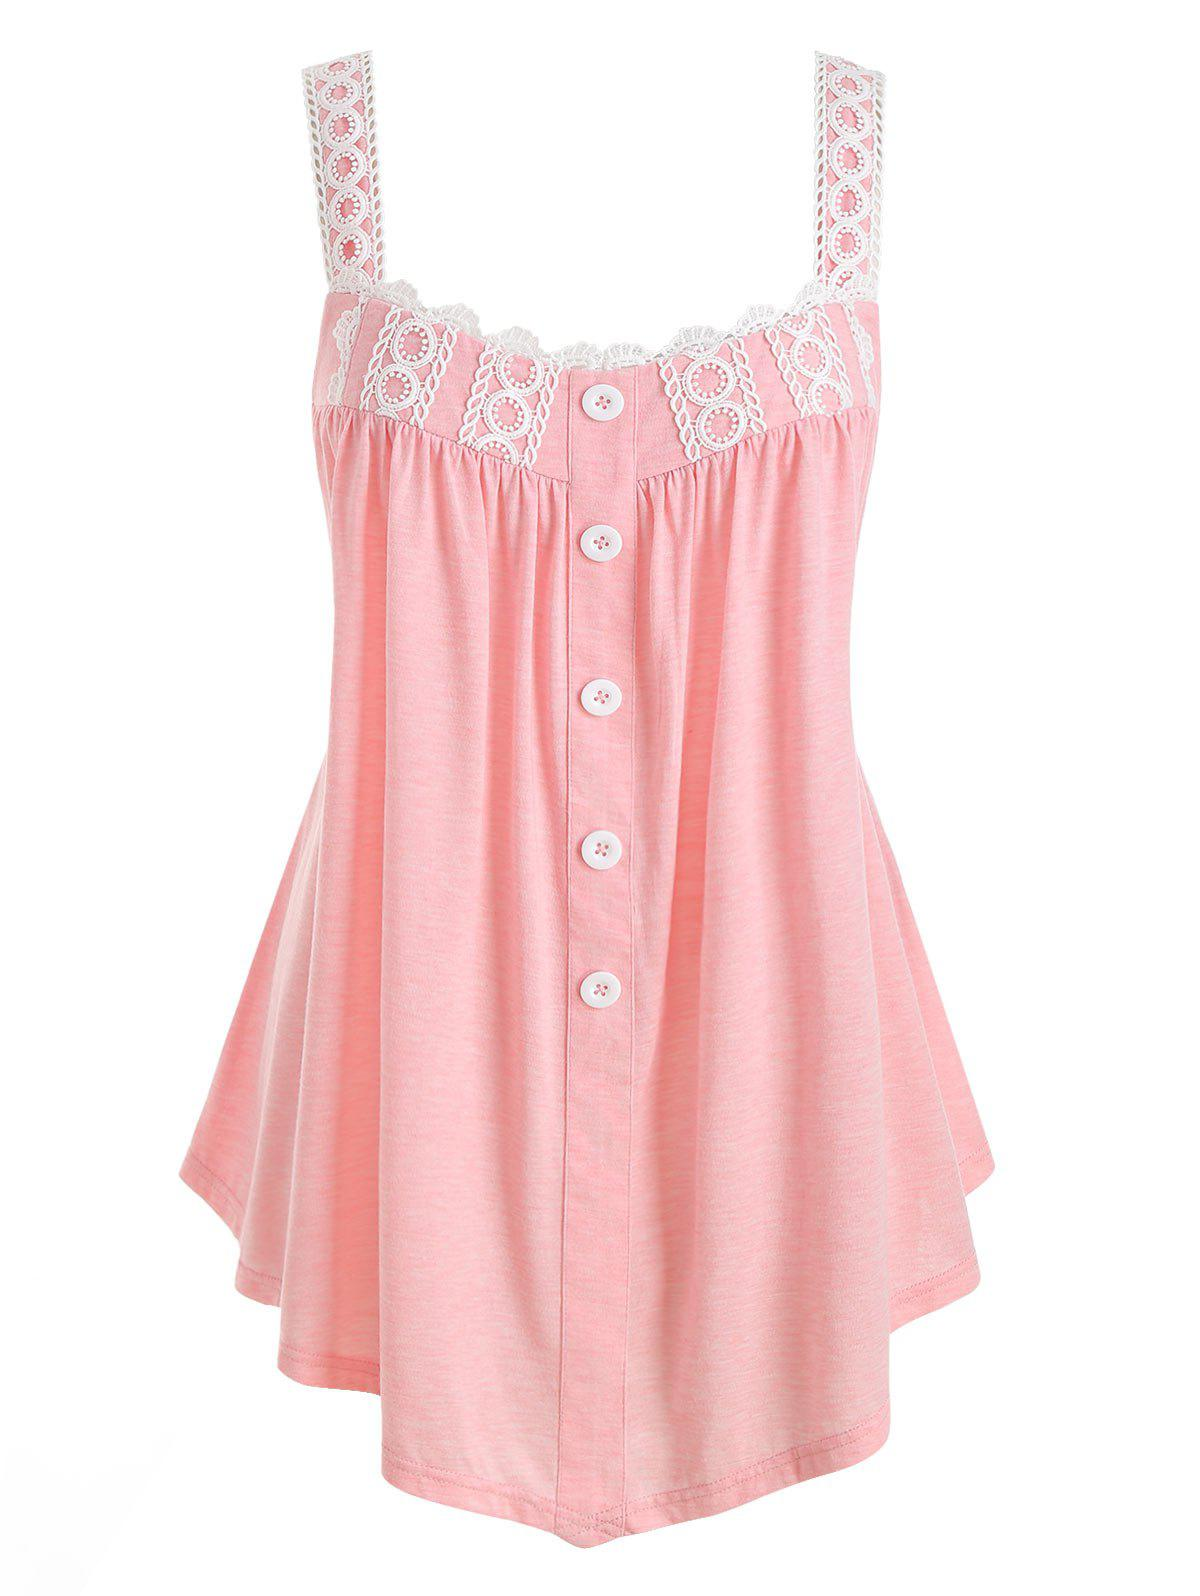 Plus Size Applique Two Tone Button Tank Top - PIG PINK 5X